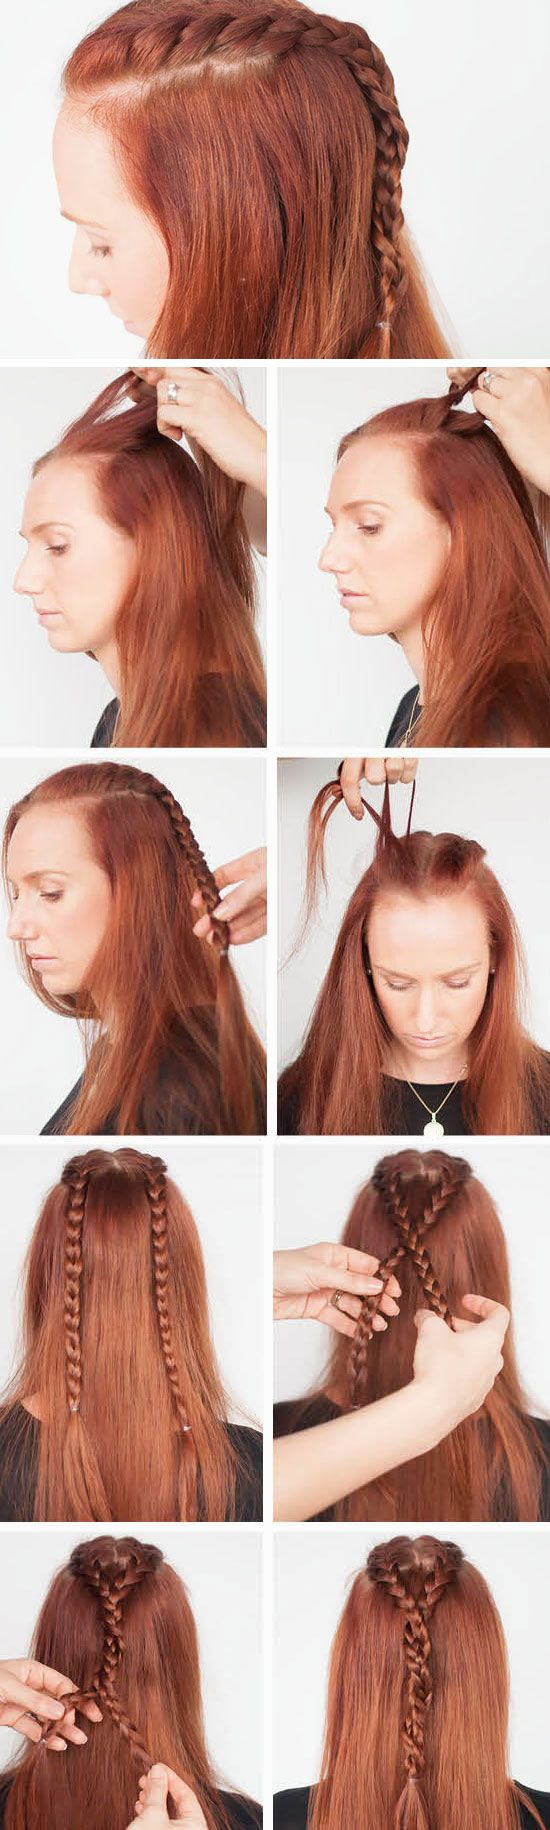 Hairstyles Games Awesome 18 Diy Game Of Thrones Inspired Hairstyles  Pinterest  Diy Games